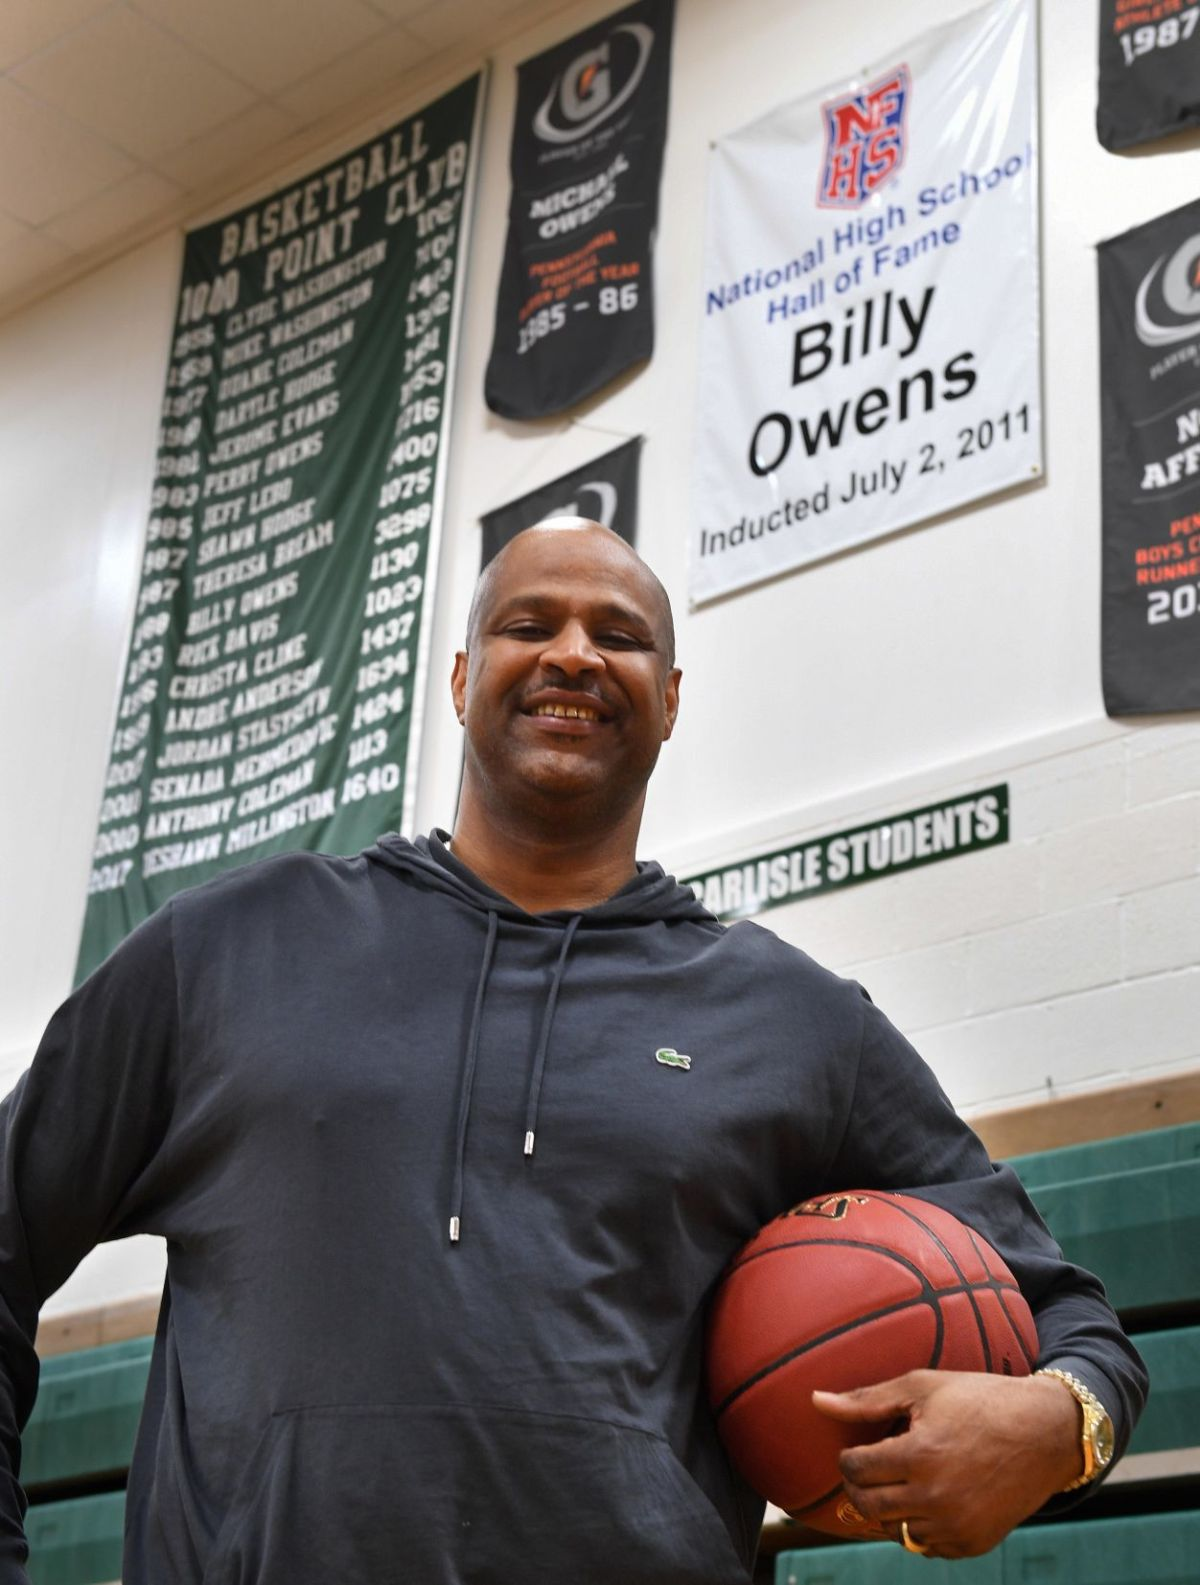 Billy Owens Kevin Durant studied him fans idolized him his son is trying to follow him  Boys